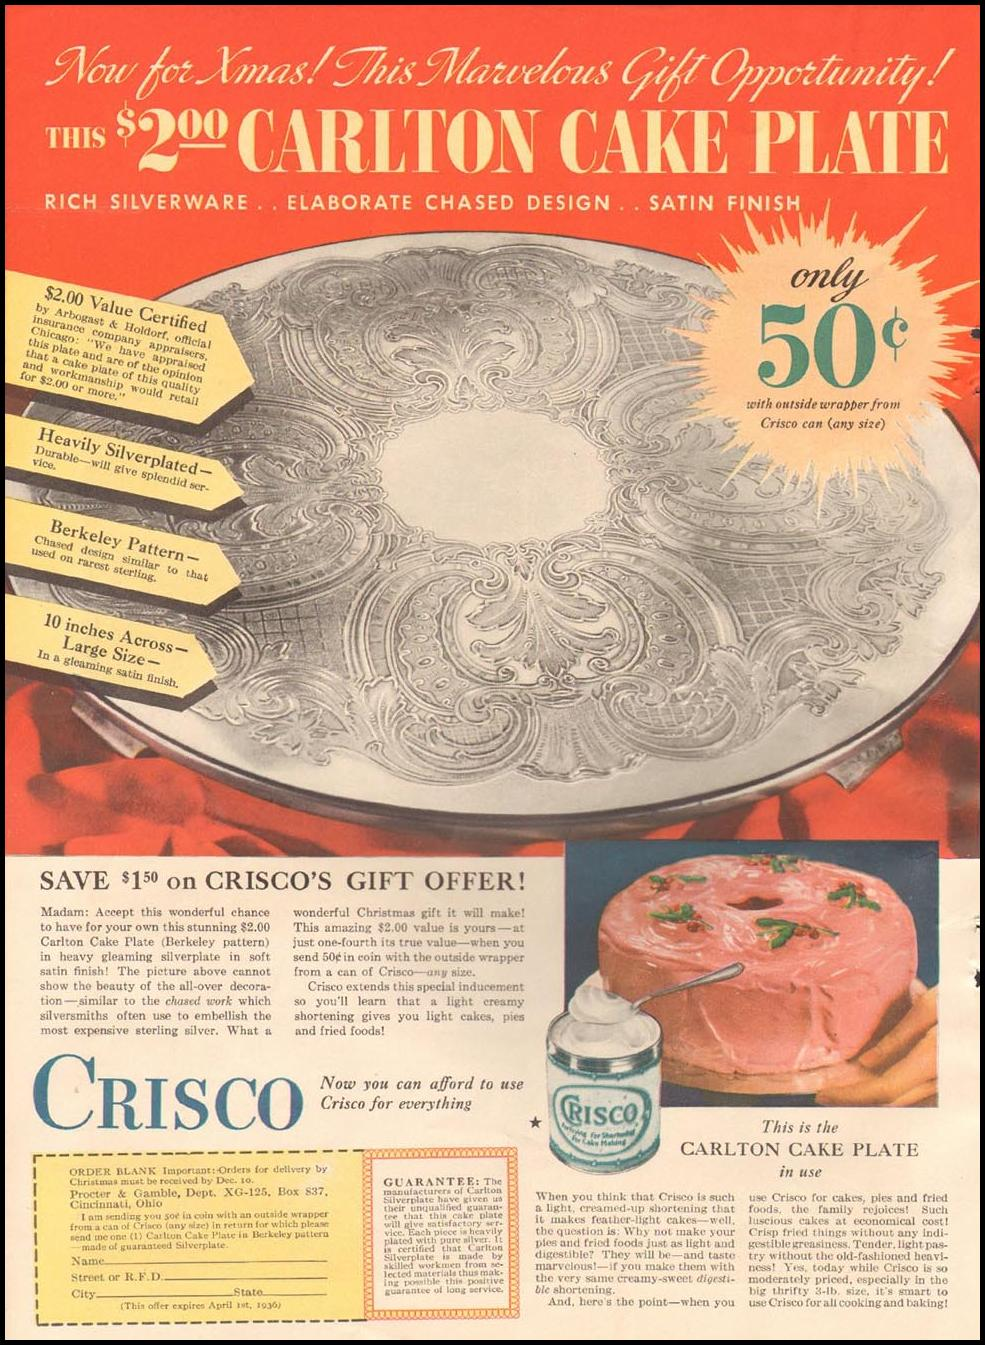 CRISCO VEGETABLE SHORTENING GOOD HOUSEKEEPING 12/01/1935 p. 12